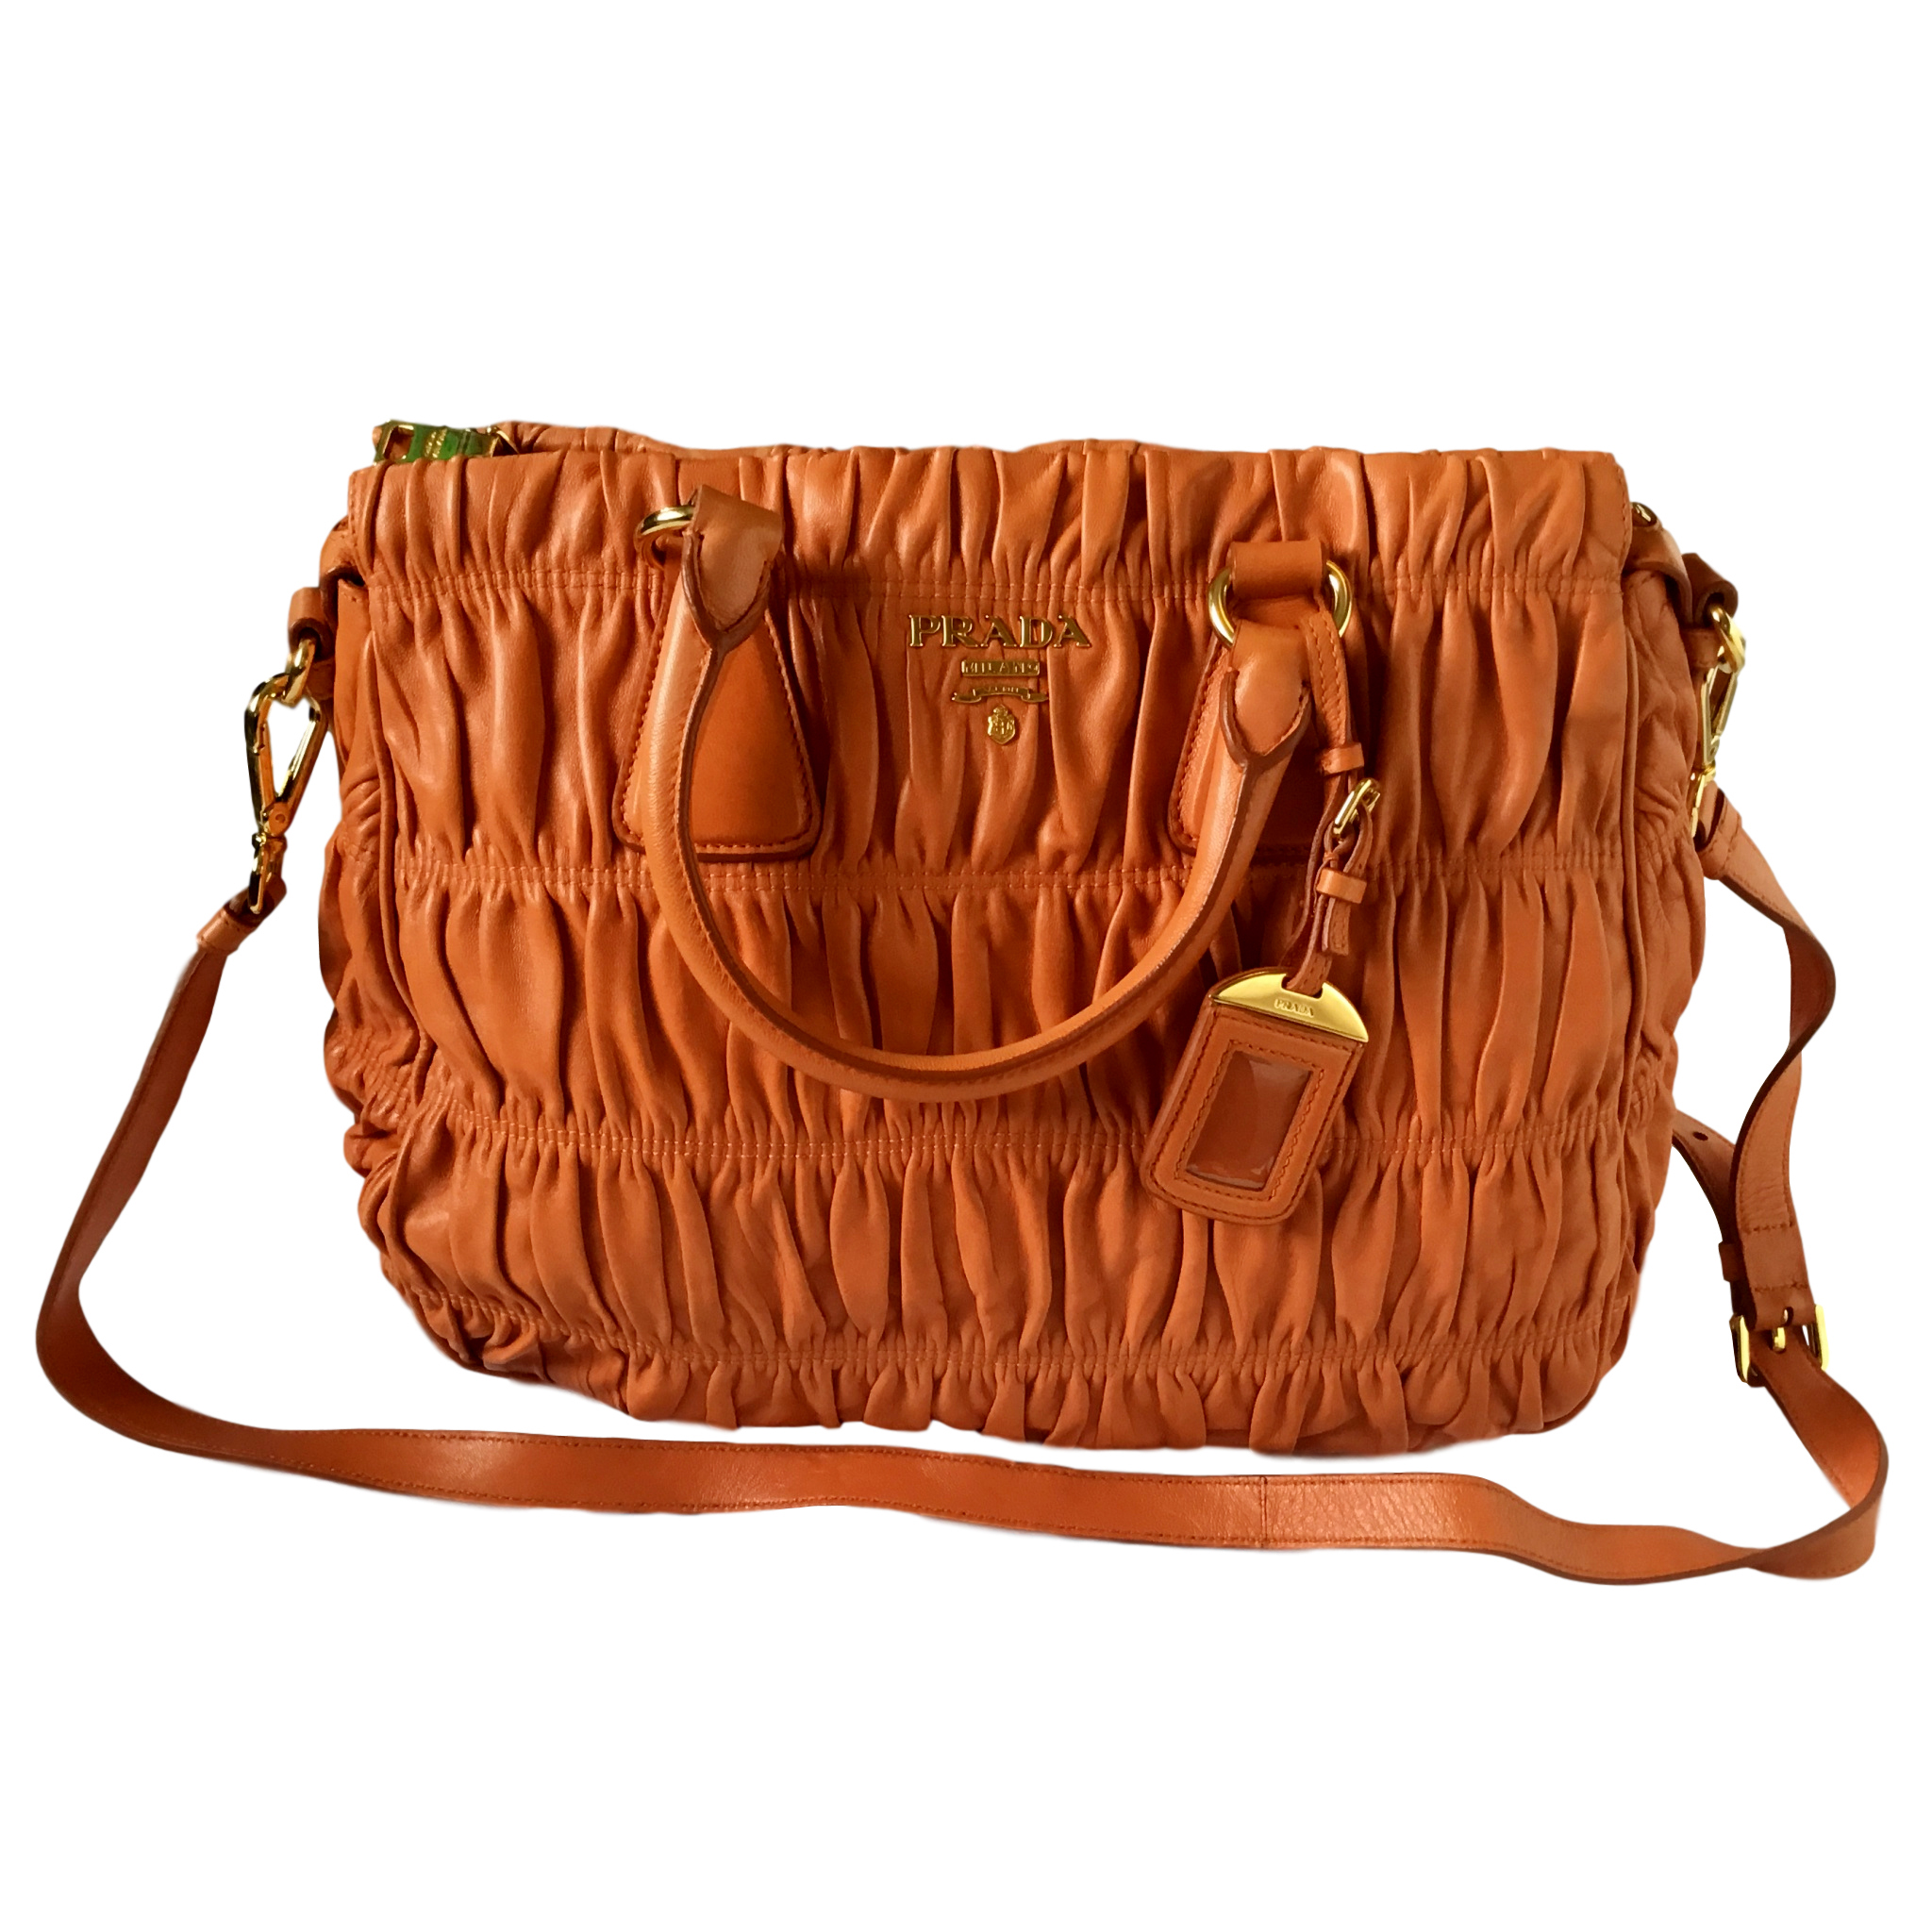 b4c21de8993f Prada Ruched Orange Nappa Gaufre Bn1336 Bag | HEWI London